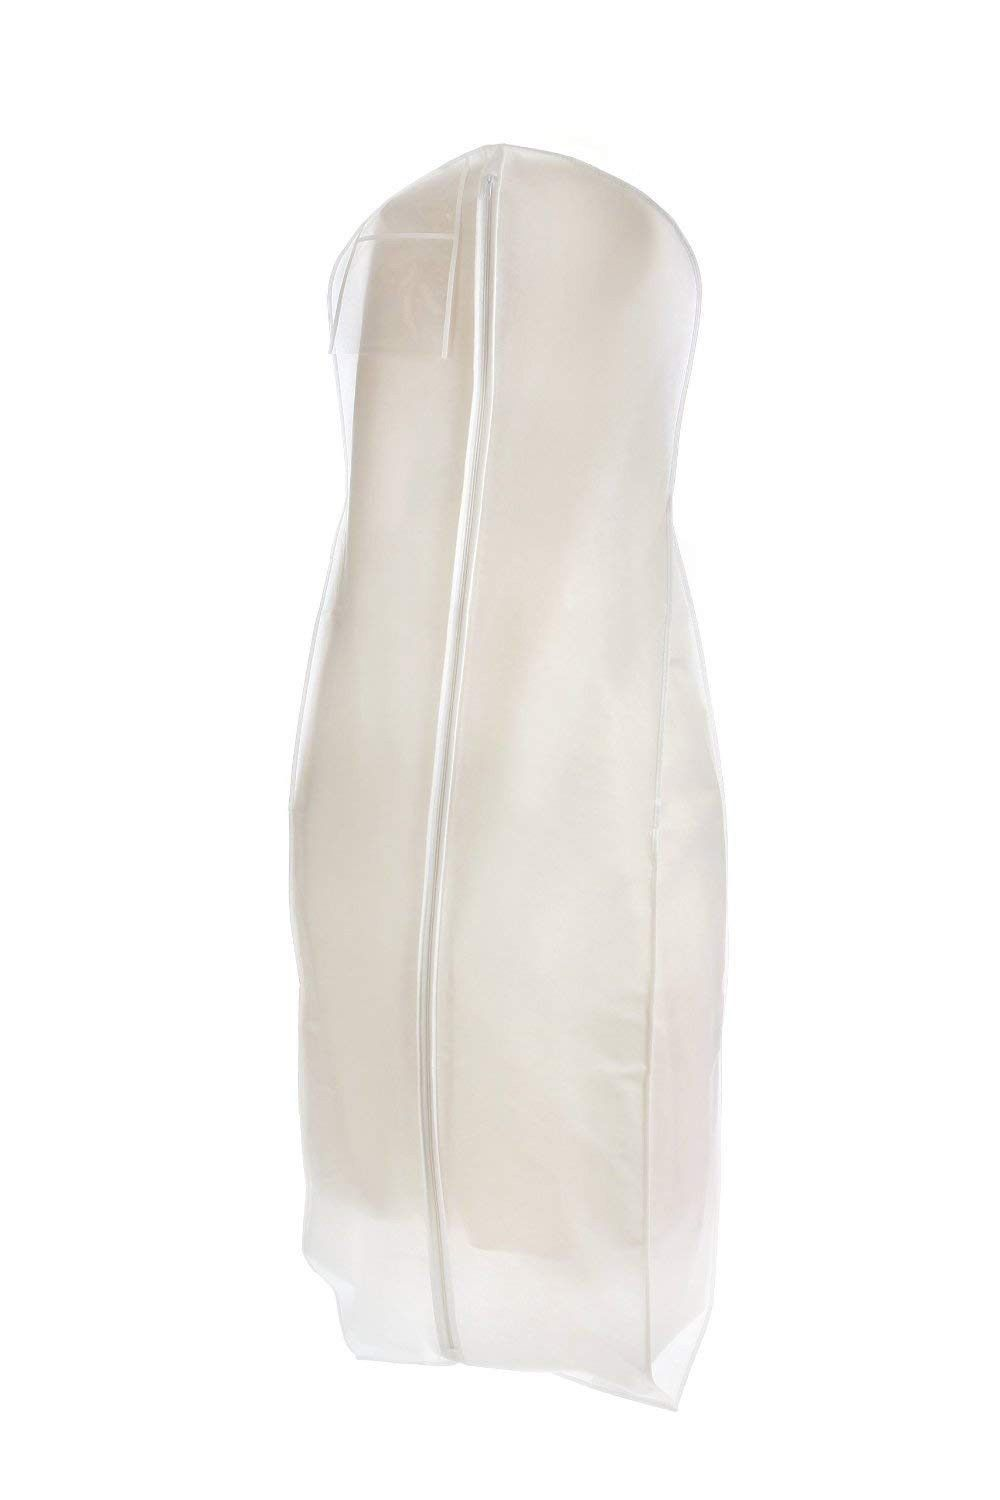 Also For Bridesmaid Gowns Durable Breathable White Wedding Gown Garment Bag